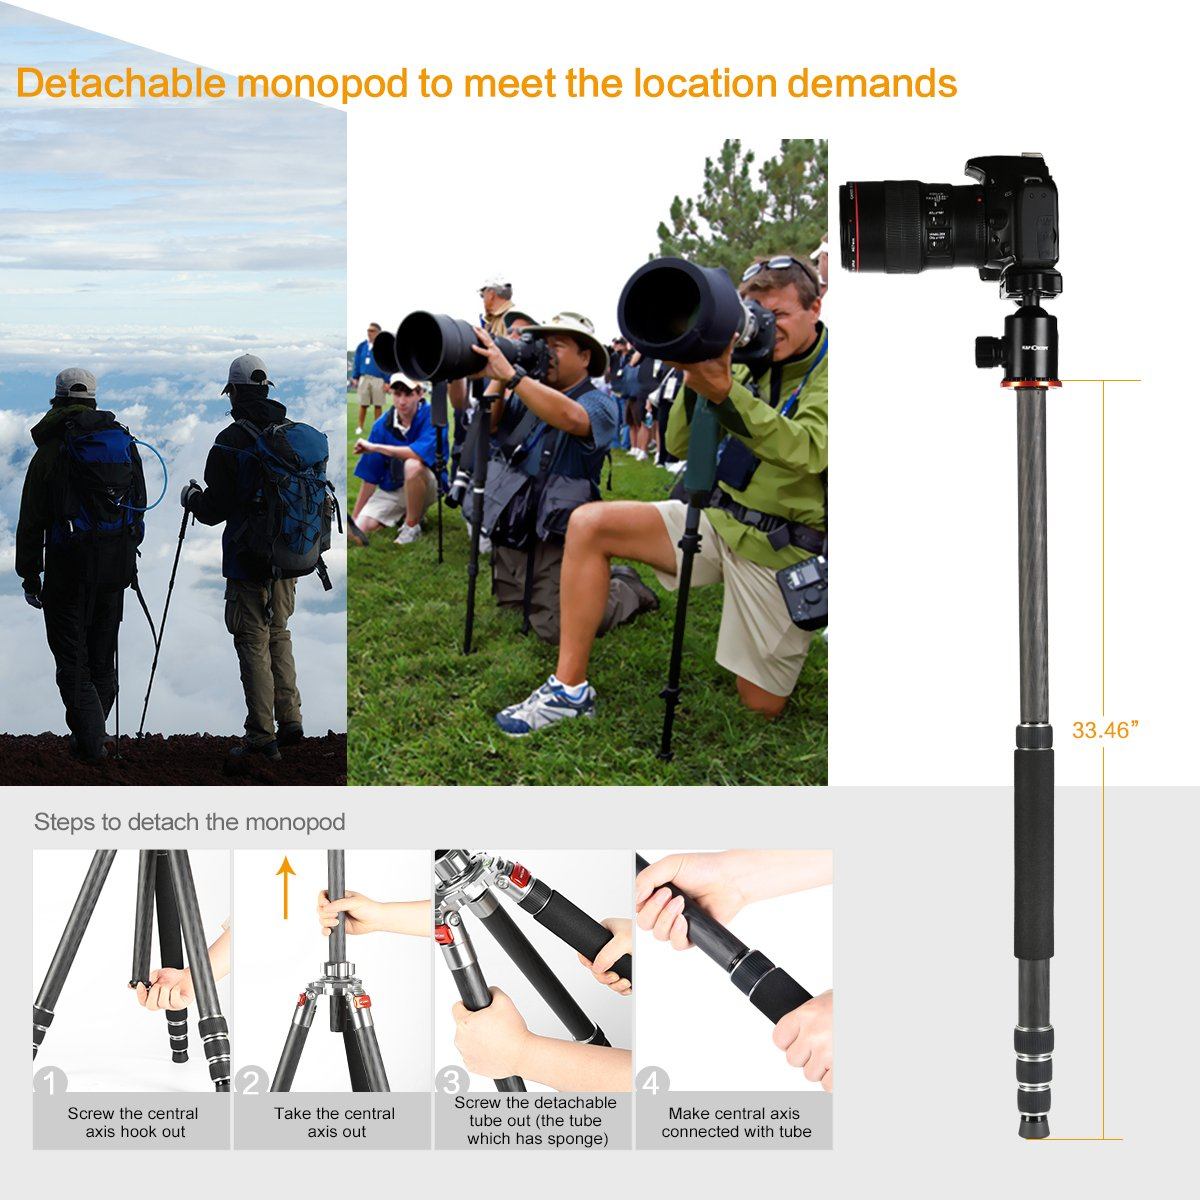 K&f Concept Carbon Fiber Camera Tripod 4 Section 61 Inch with Load Capacity 26.46lbs Monopod for Camera DSLR DV Canon Nikon Sony by K&F Concept (Image #3)